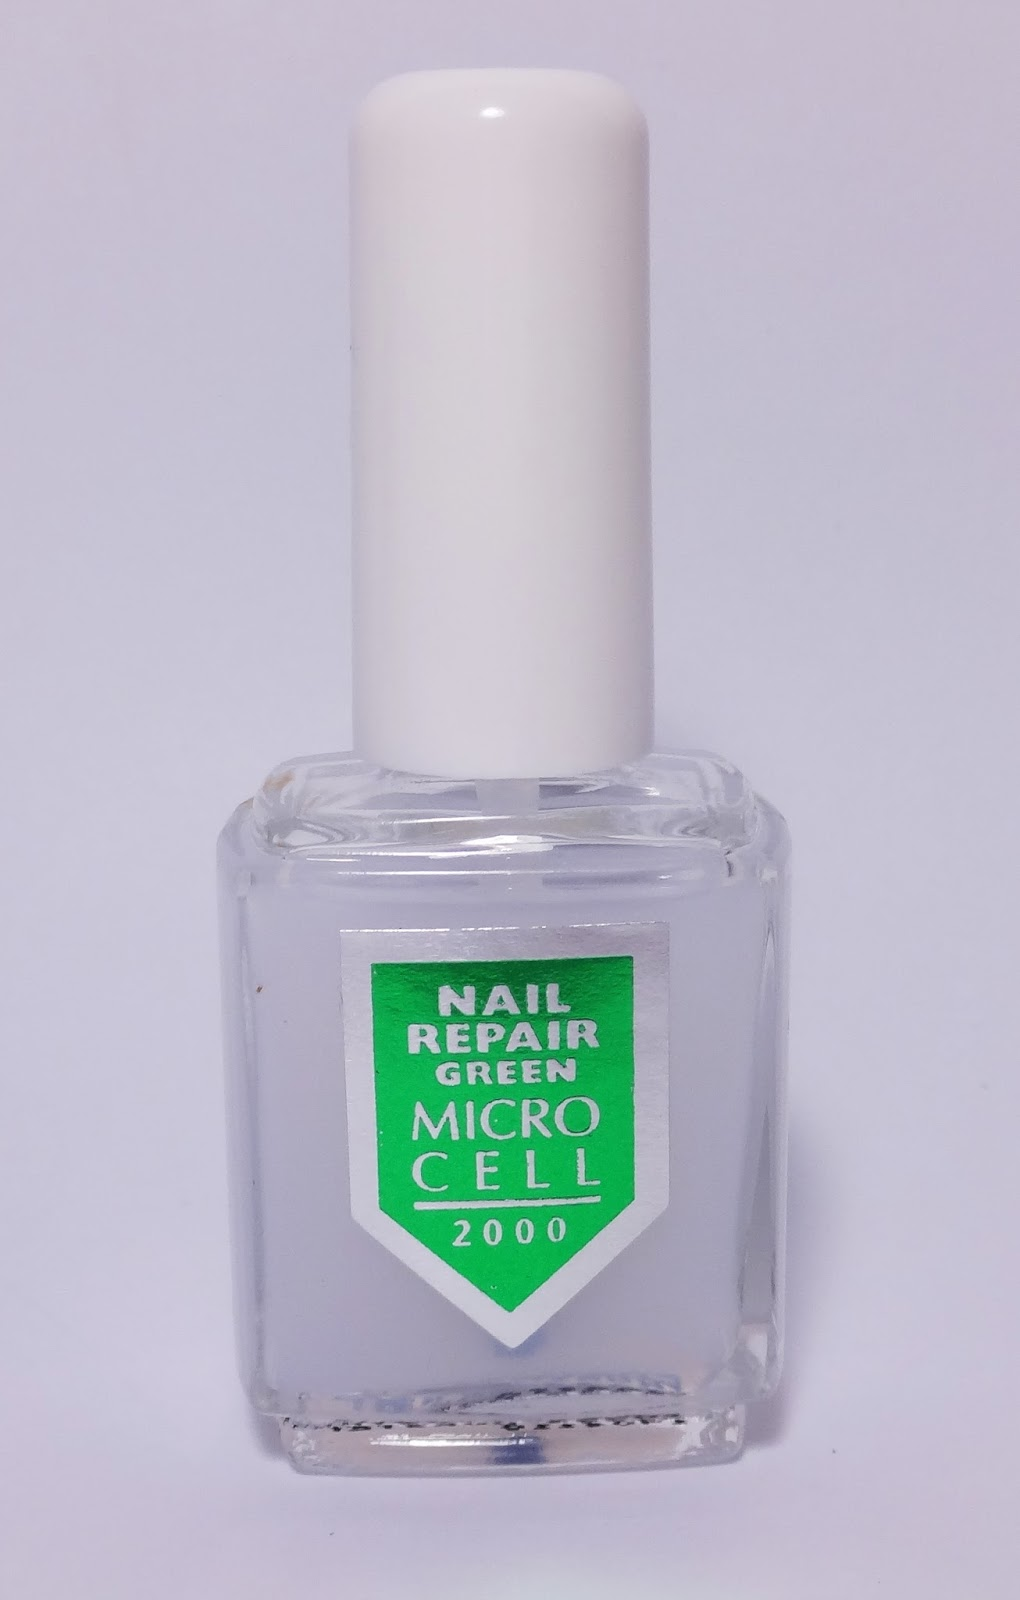 Micro Cell 2000 - Nail Repair GREEN Pretty Clover Beautyblog